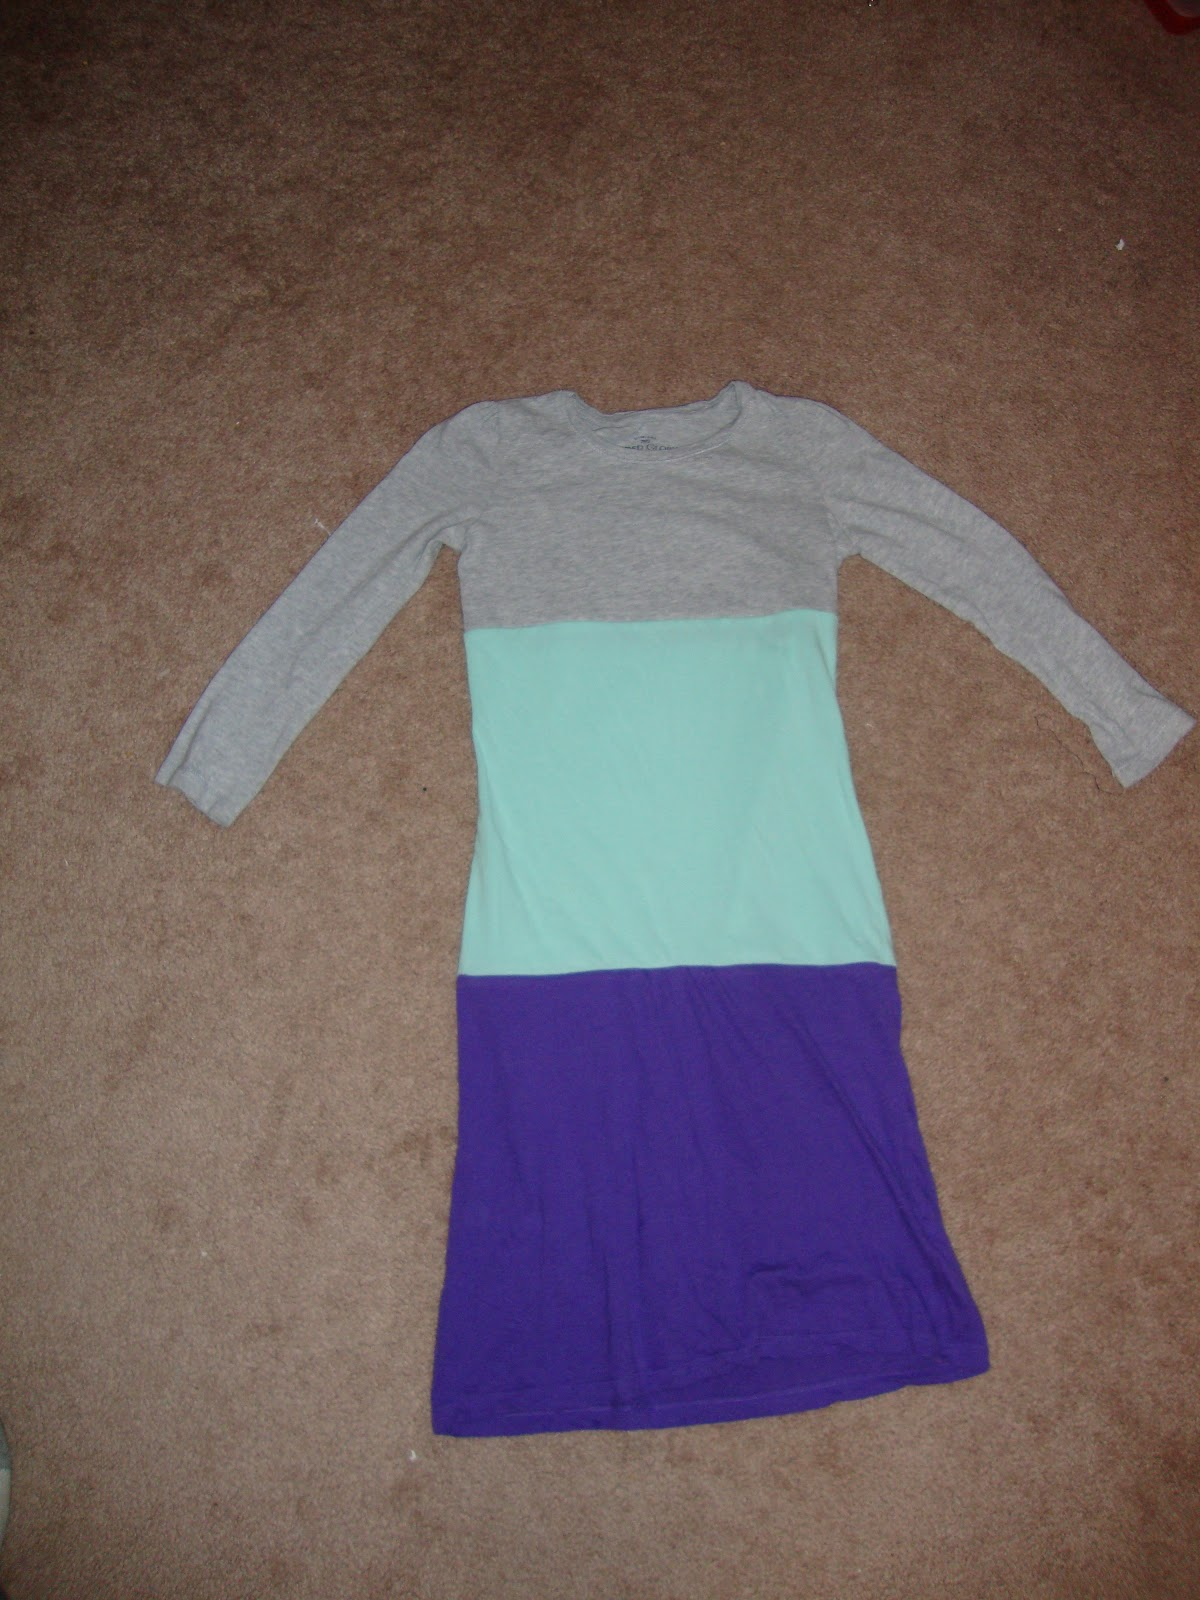 Easy peasy lemon squeezy upcycling old t shirts for Make a dress shirt